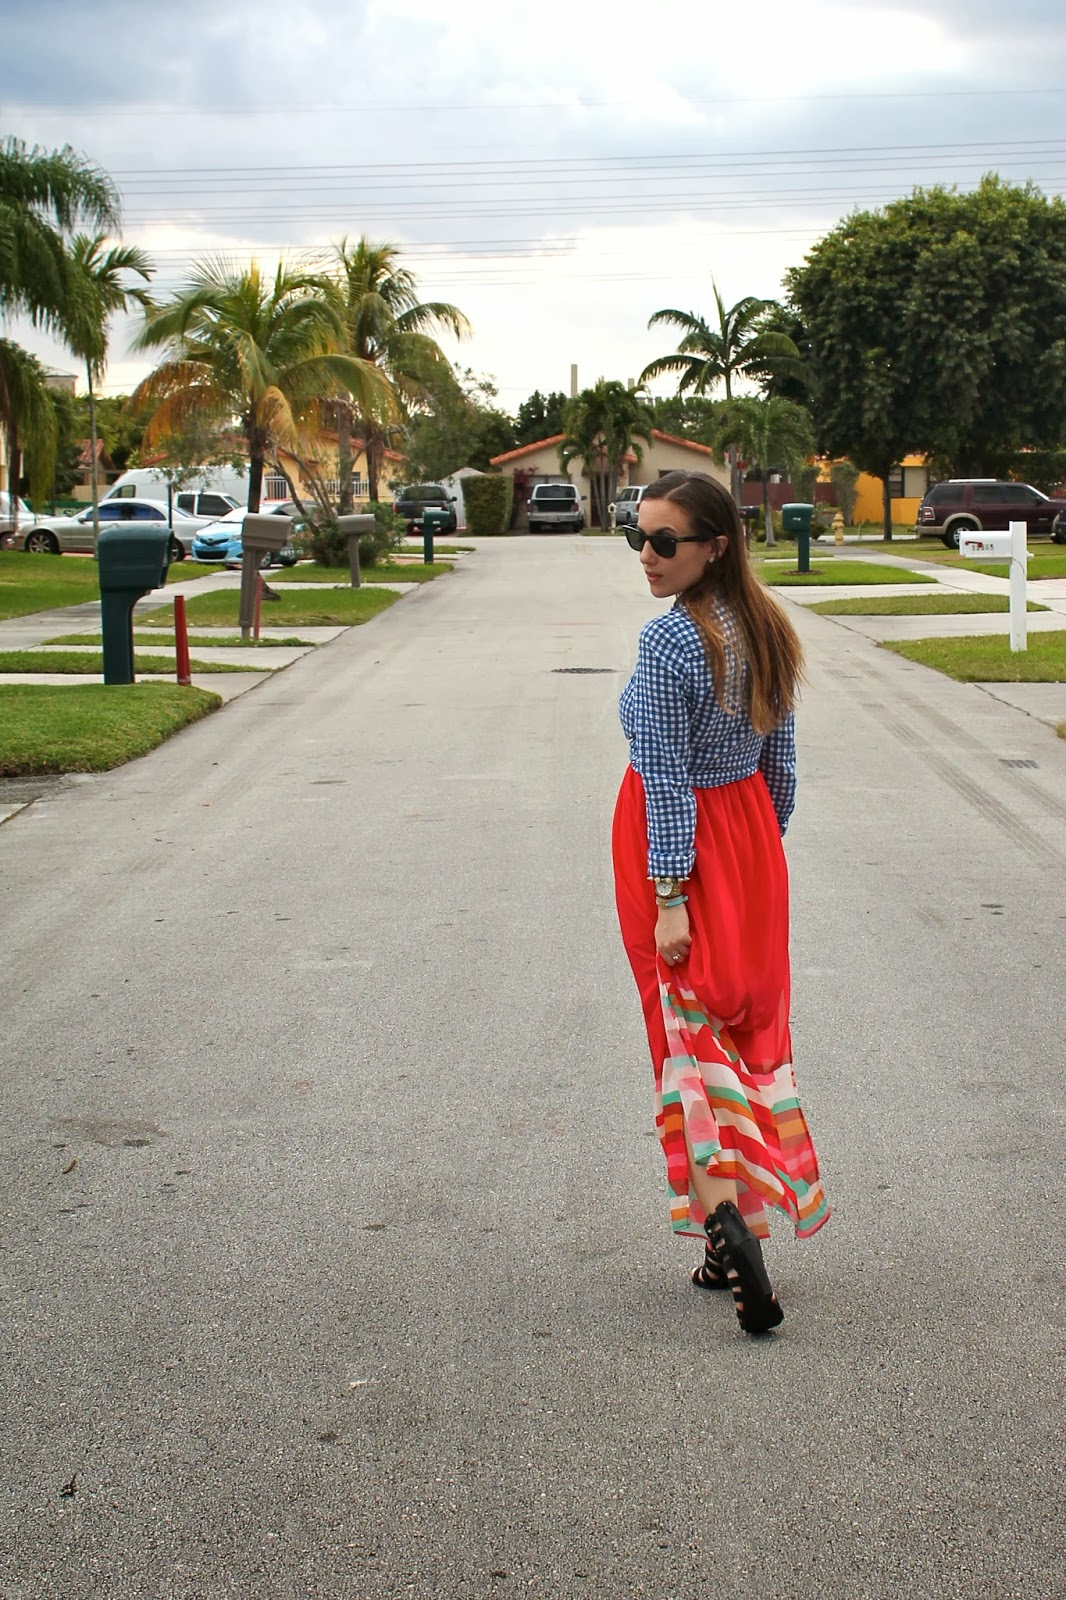 Abercrombie&Fitch, Miami blogger, fashion, style, ootd, BCBGeneration, plaid, Nordstrom, preppy, southern, Steve Madden, maxi dress